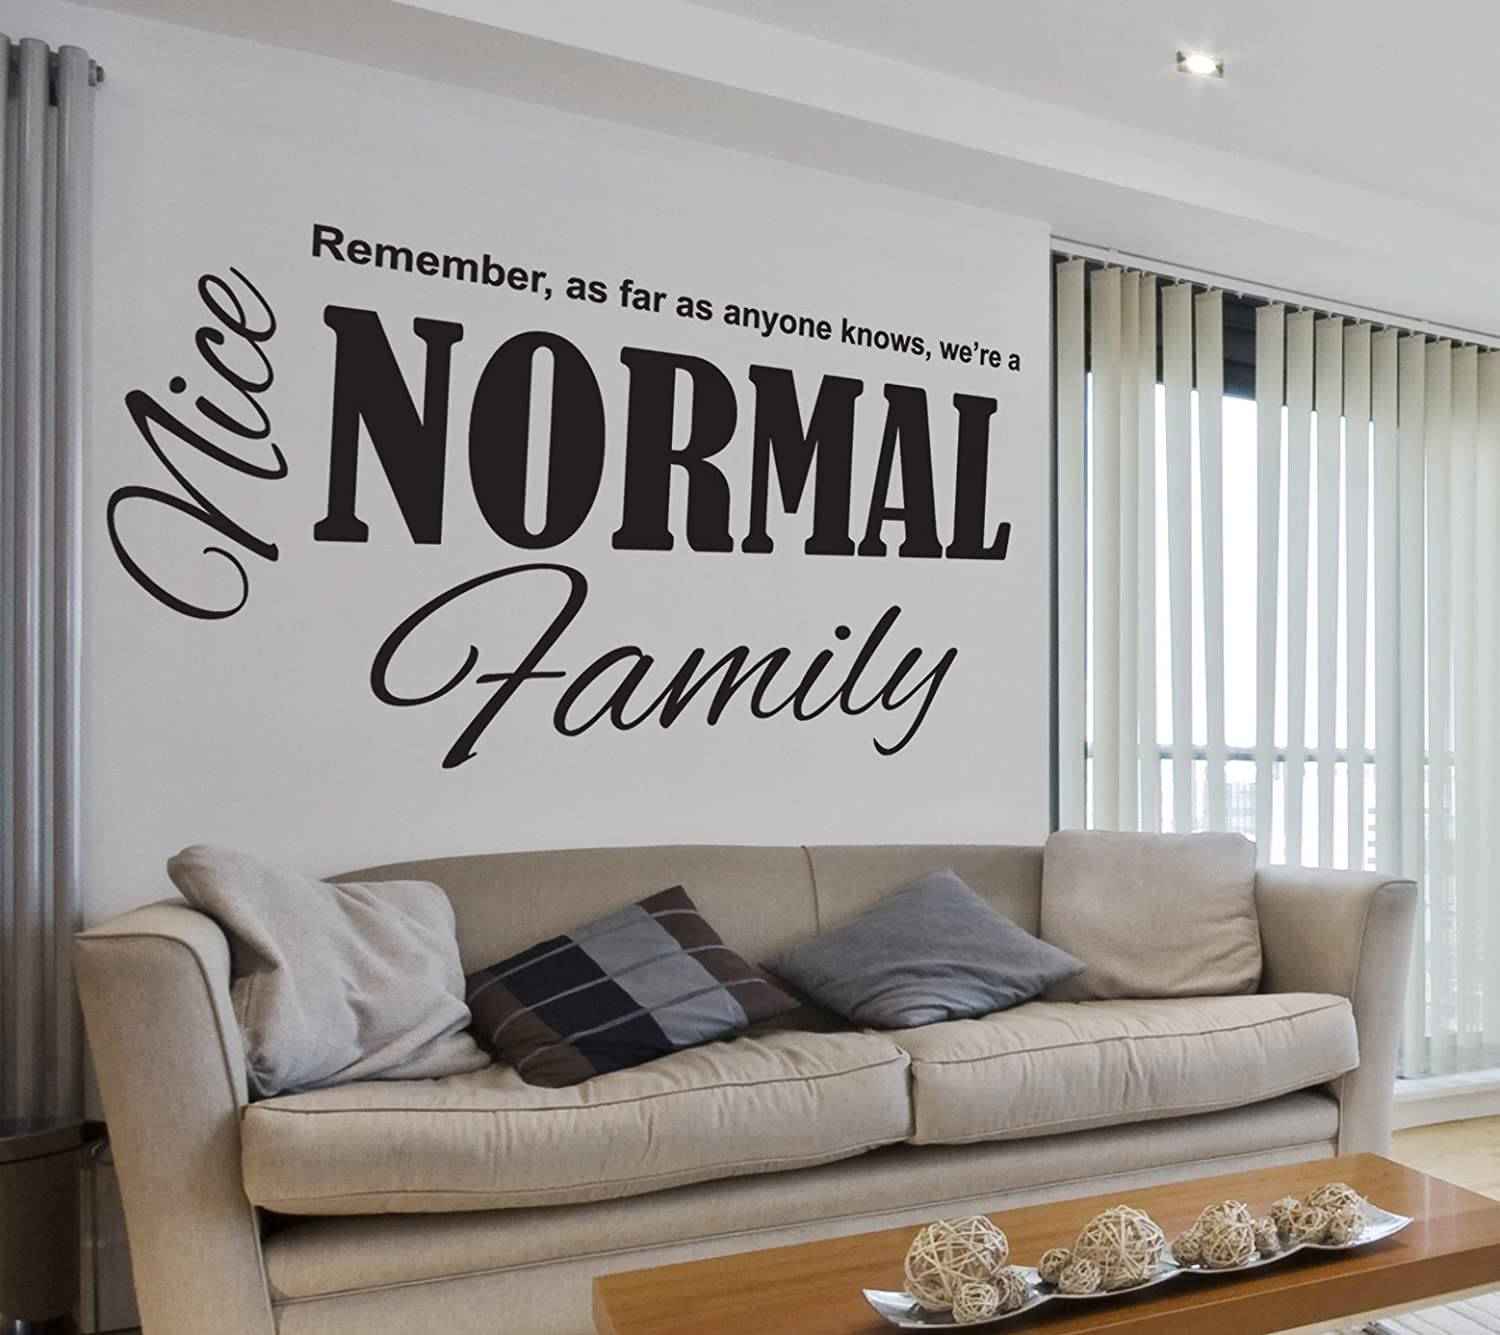 we are a nice normal family fun quote lounge living room hallway